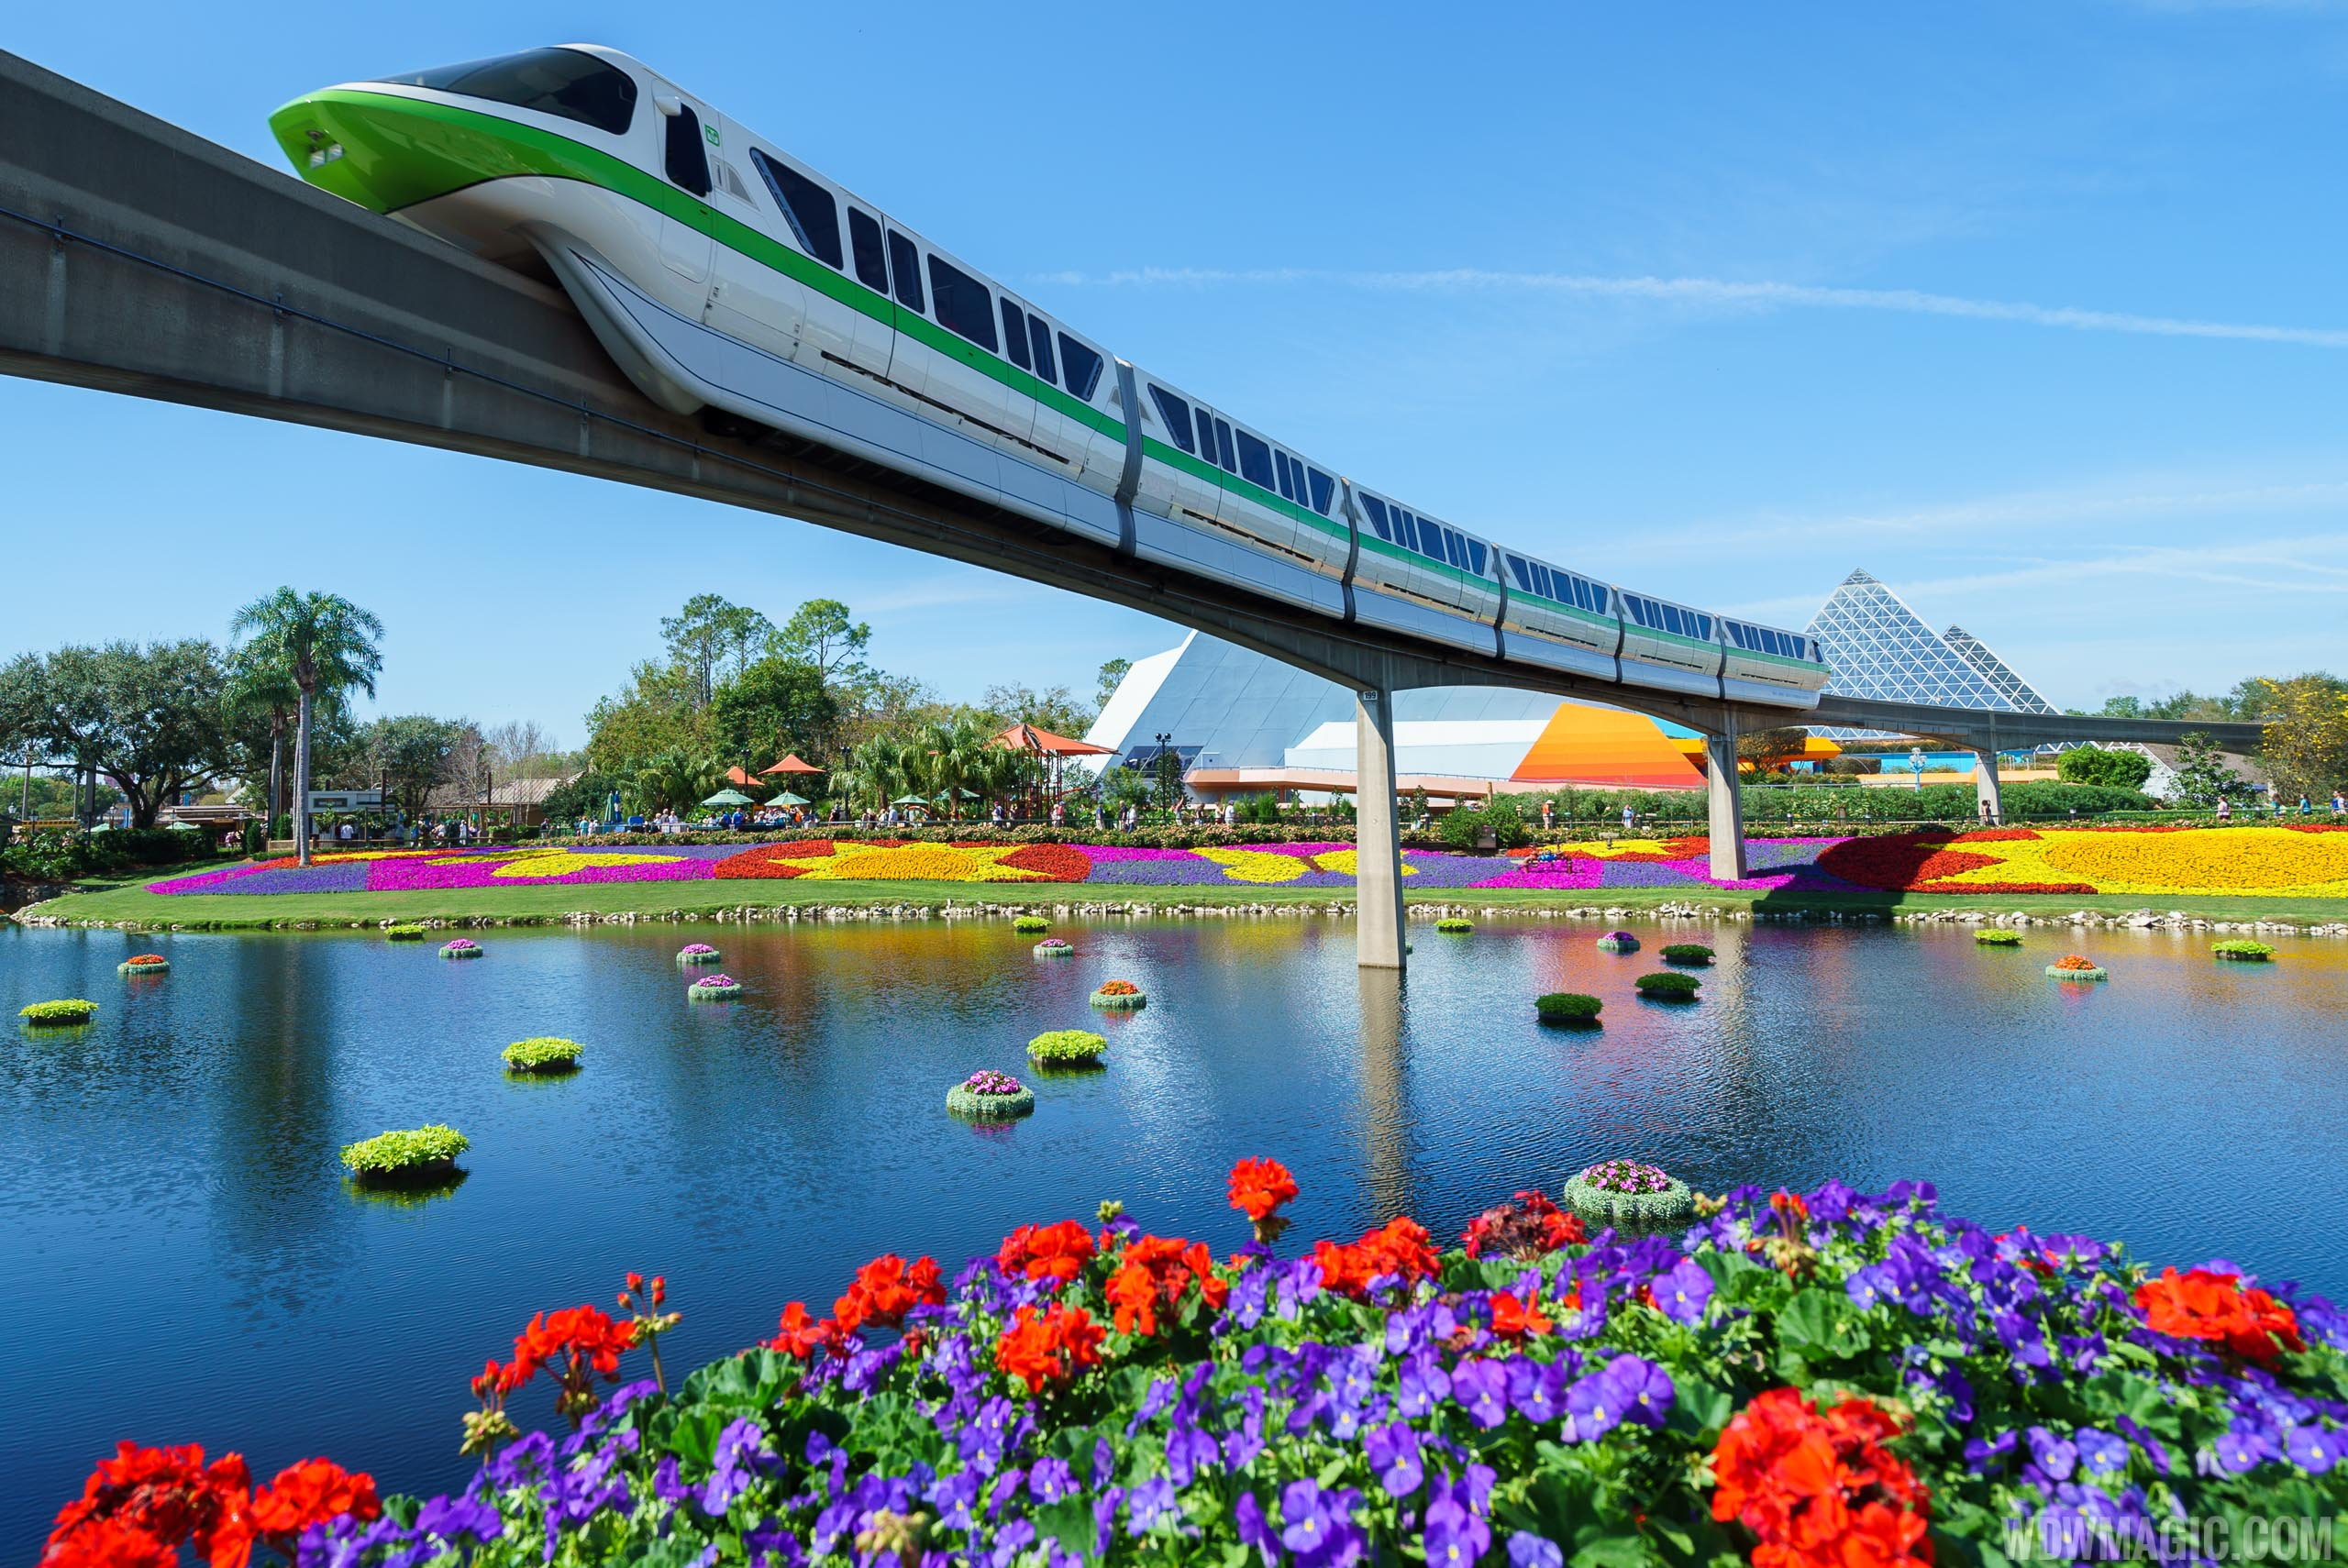 2017 Flower and Garden Festival - Monorail passes colorful gardens